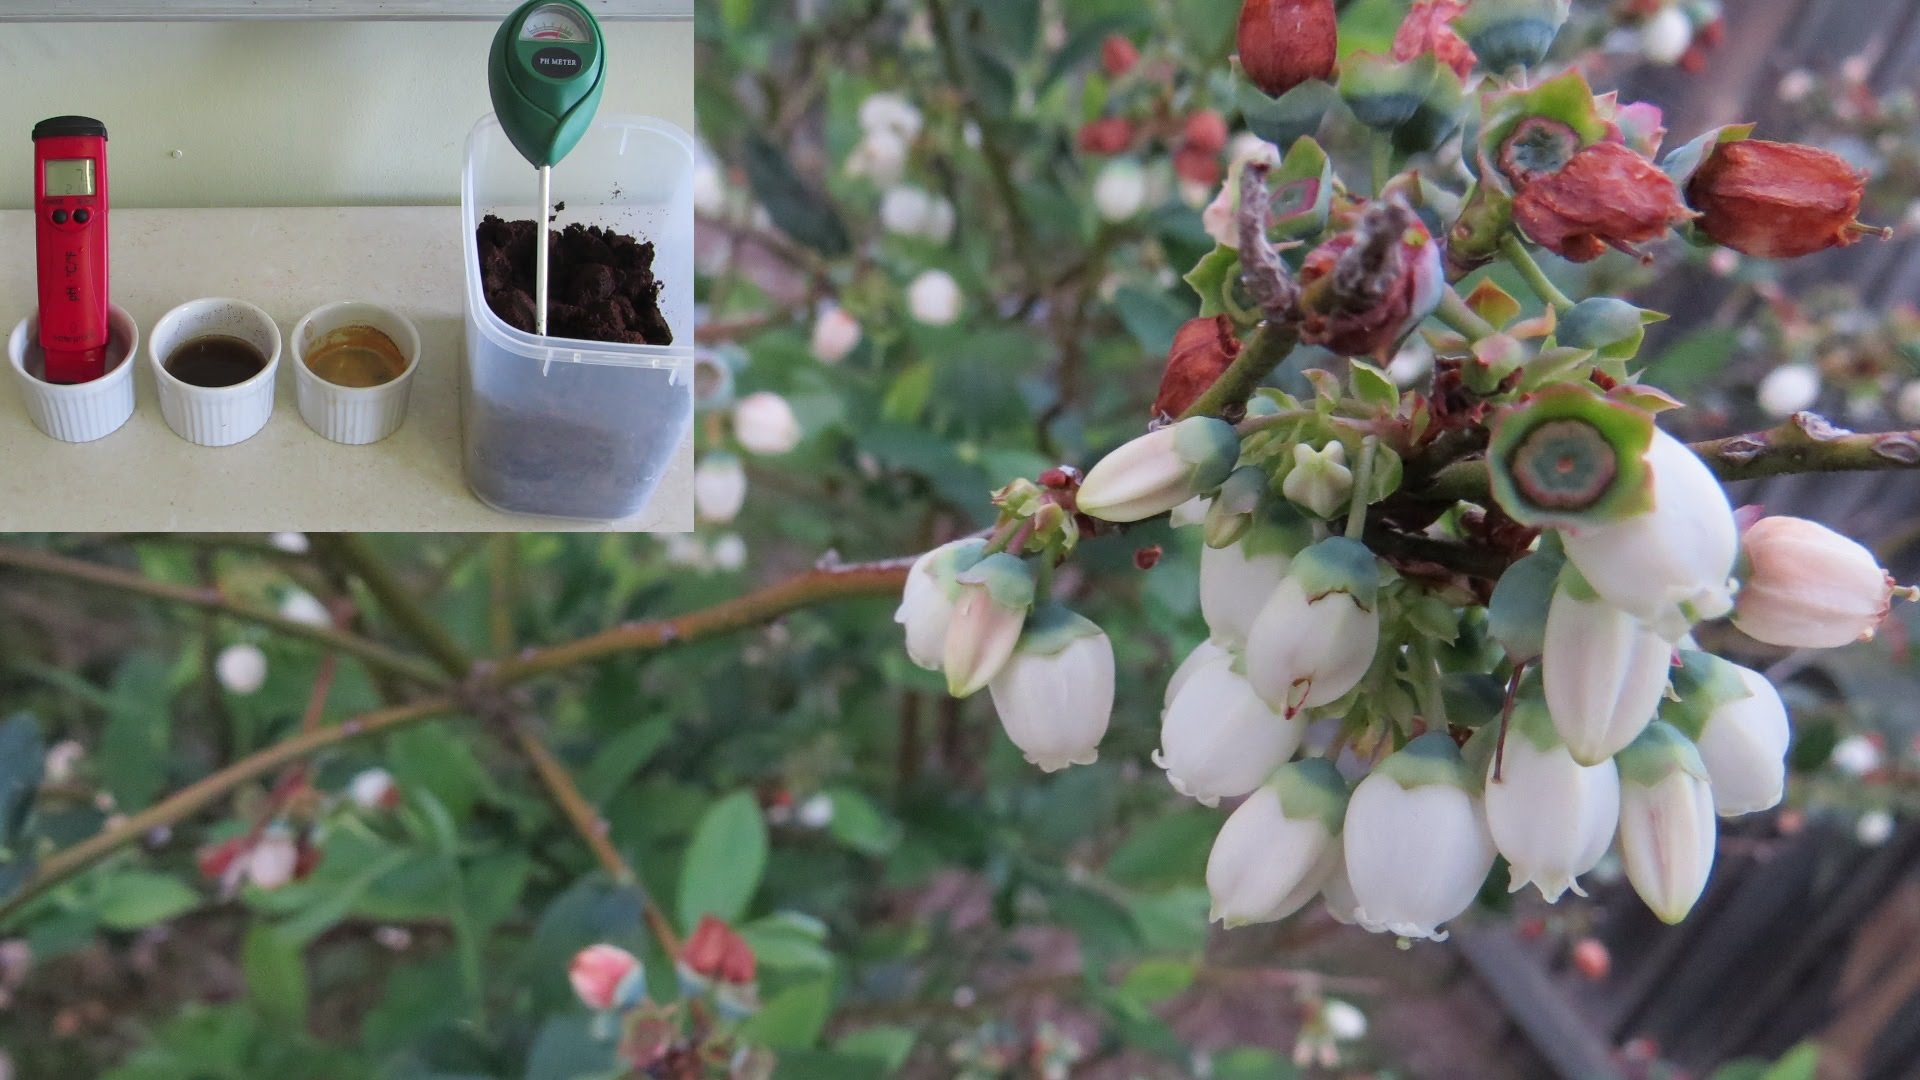 Coffee grounds to lower soil ph for blueberries fact or - Are coffee grounds good for your garden ...